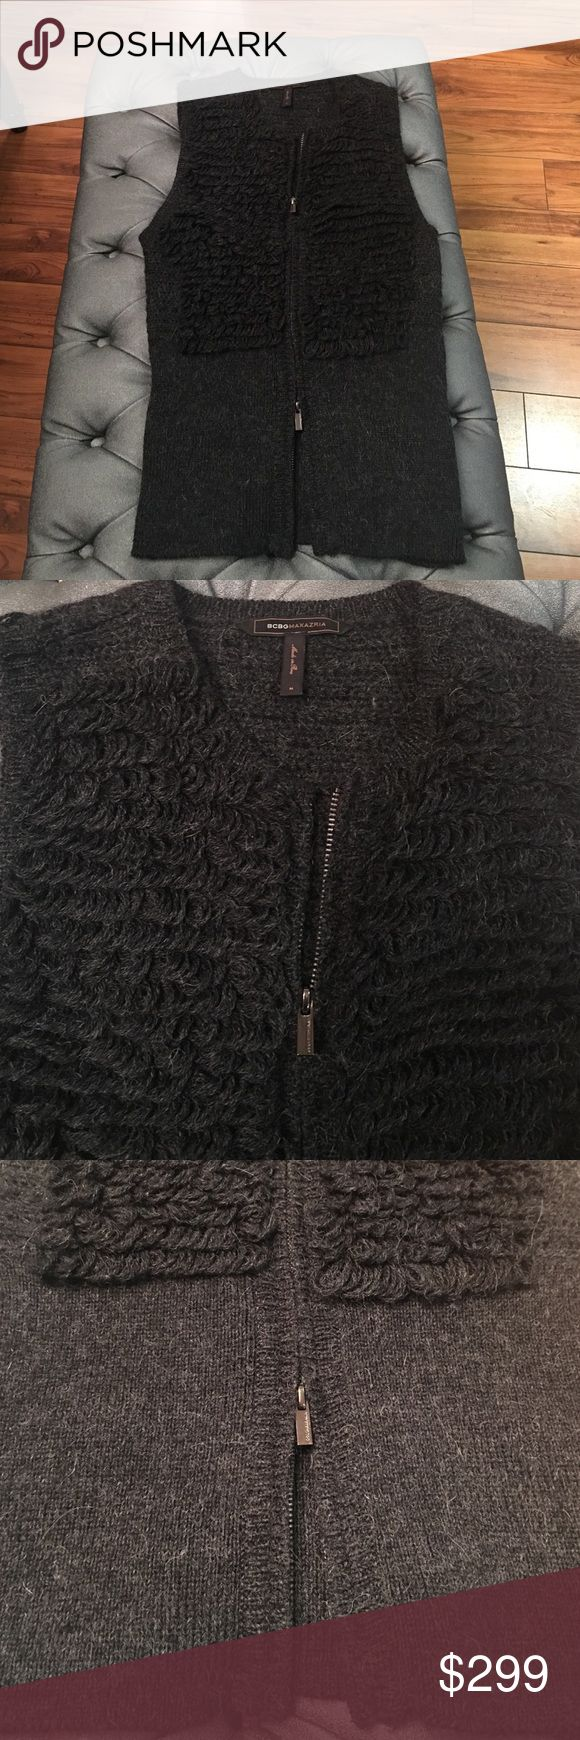 BCBG Maxazria vest Charcoal grey stunning vest. Size Medium. Stretchy warm and classy. Dress up any jeans or leggings. Double zipper from bottom and top BCBGMaxAzria Jackets & Coats Vests